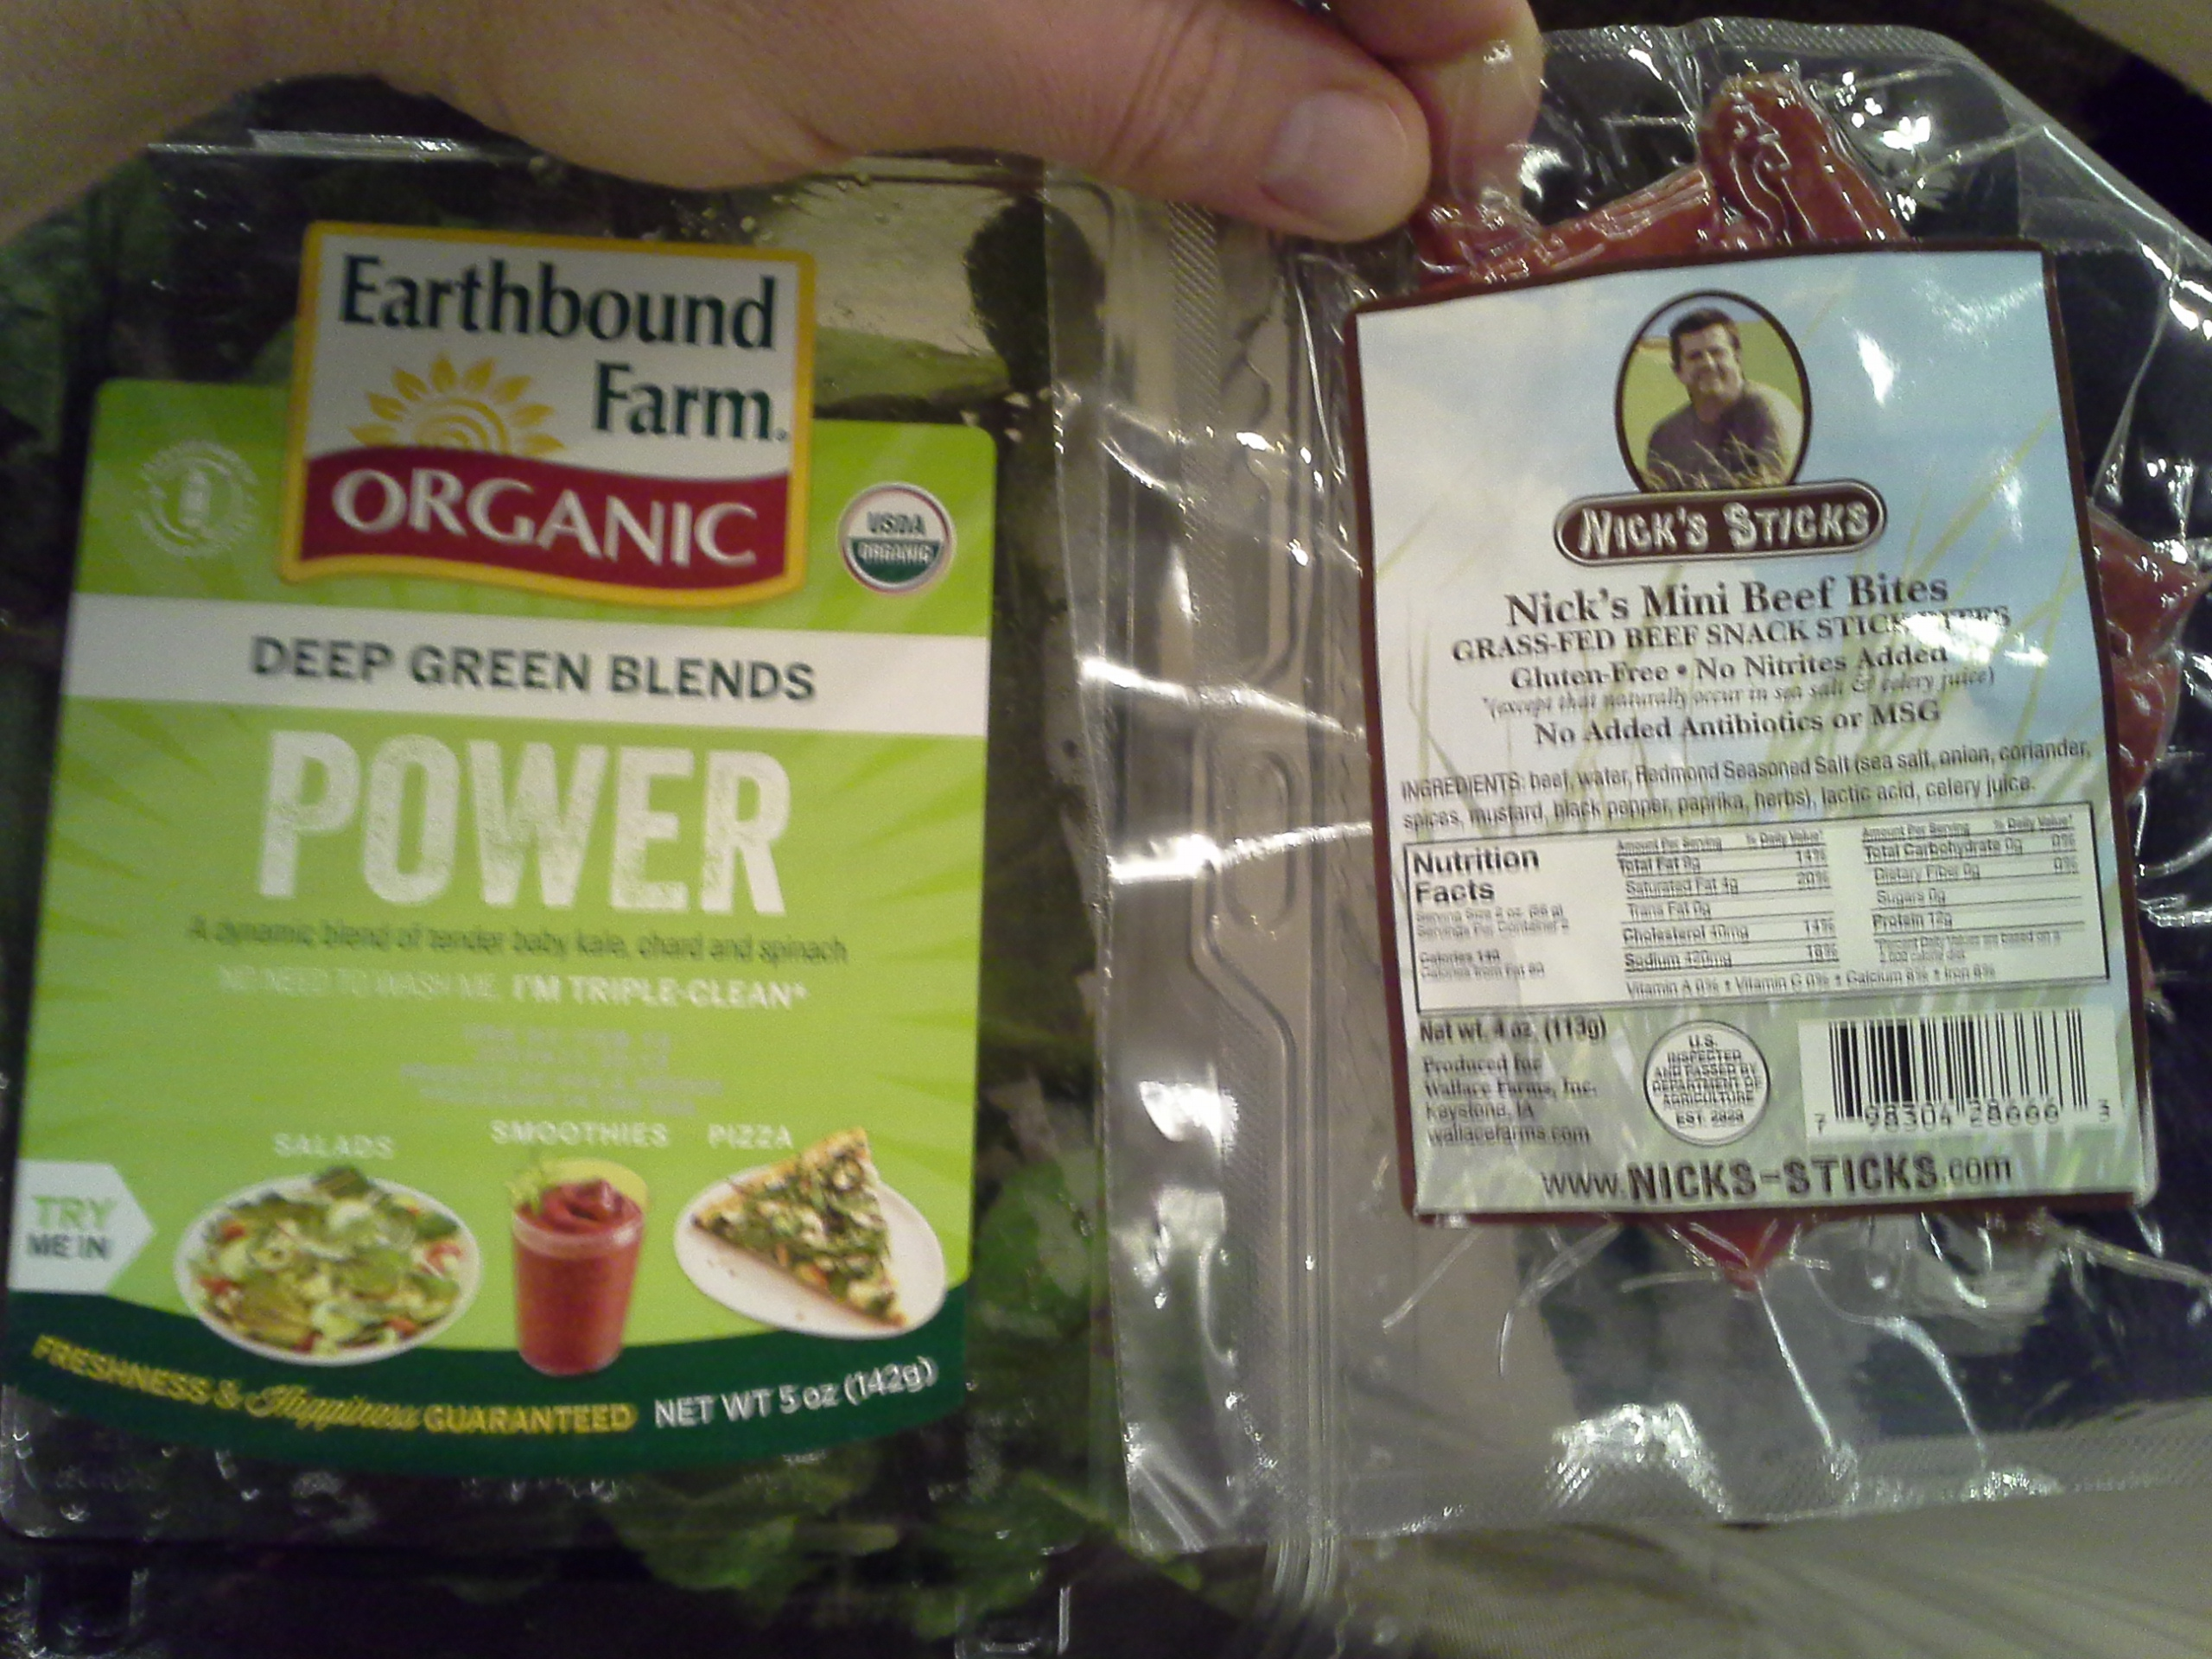 Lunch: 4:15 p.m. | 4 oz. beef sticks, 1.5 oz. baby kale/chard/spinach mix